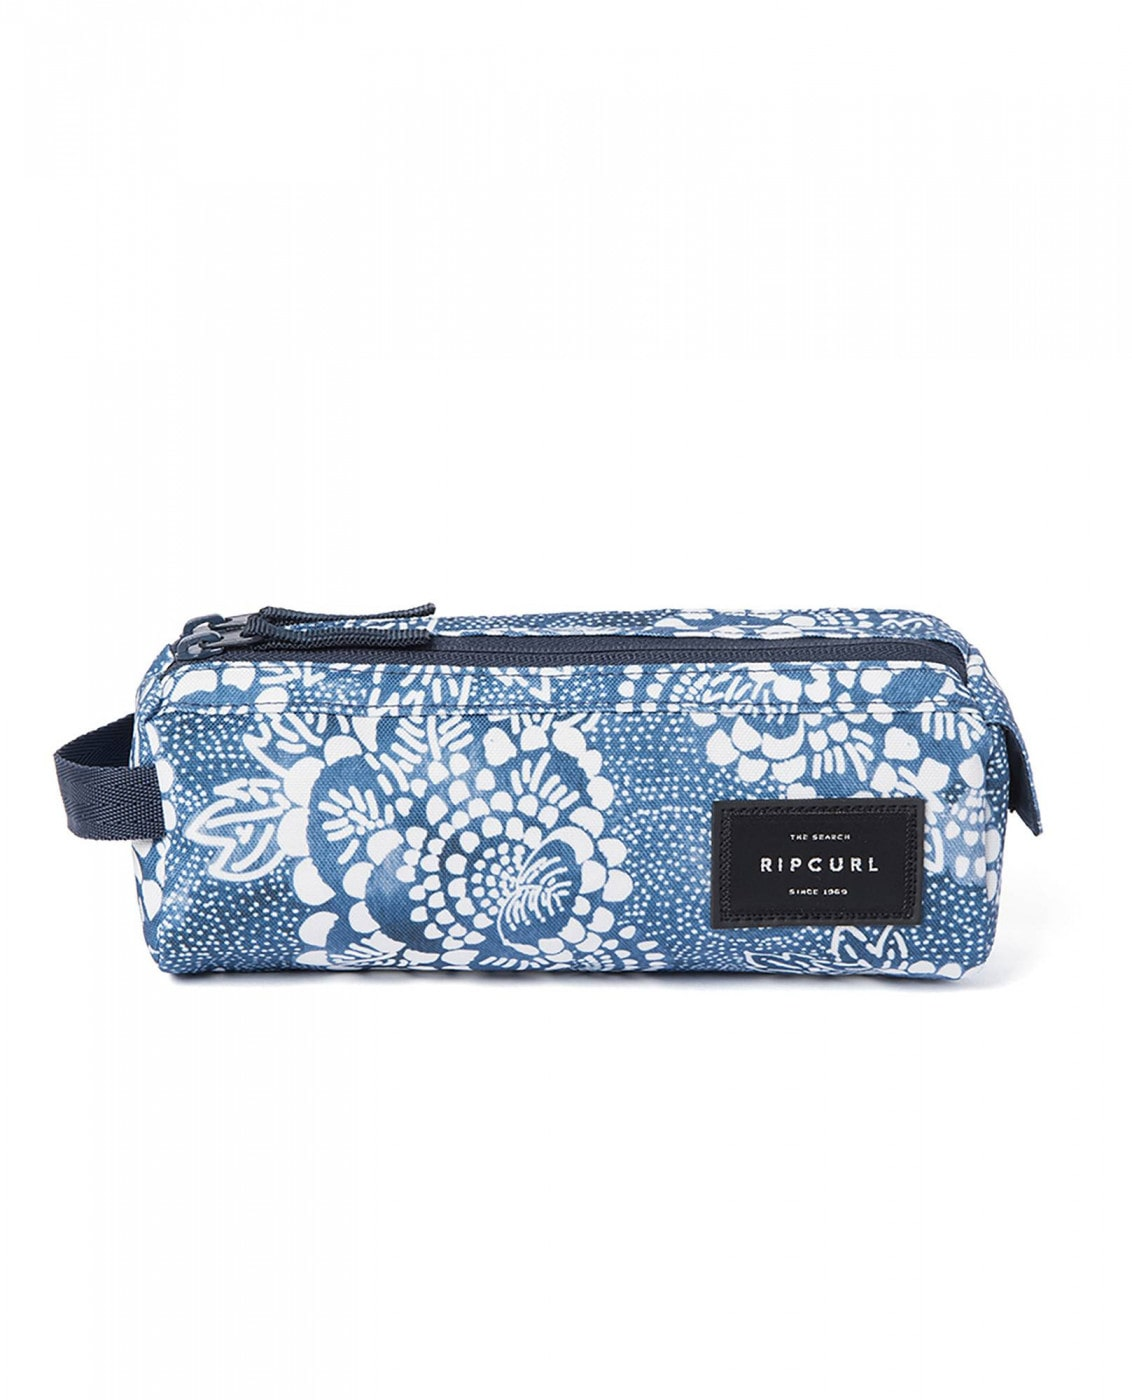 Women's pencil RIP CURL PENCIL CASE 2P COASTAL VW